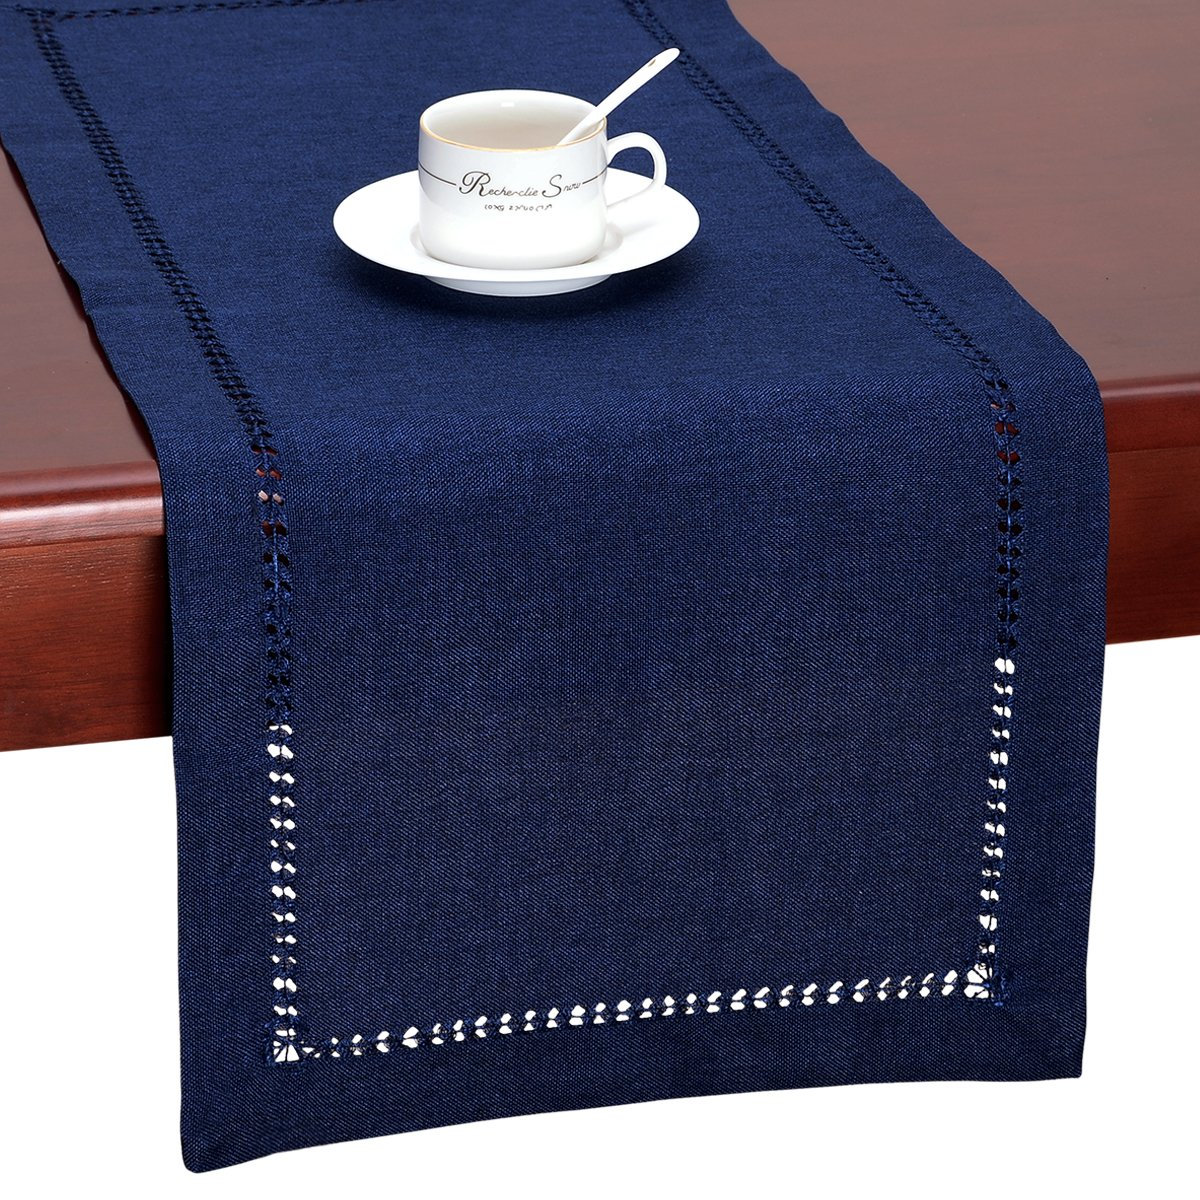 GRELUCGO Handmade Hemstitch Navy Blue Rectangular Table Runner Or Dresser Scarf (14 x 72 Inch) by GRELUCGO (Image #2)